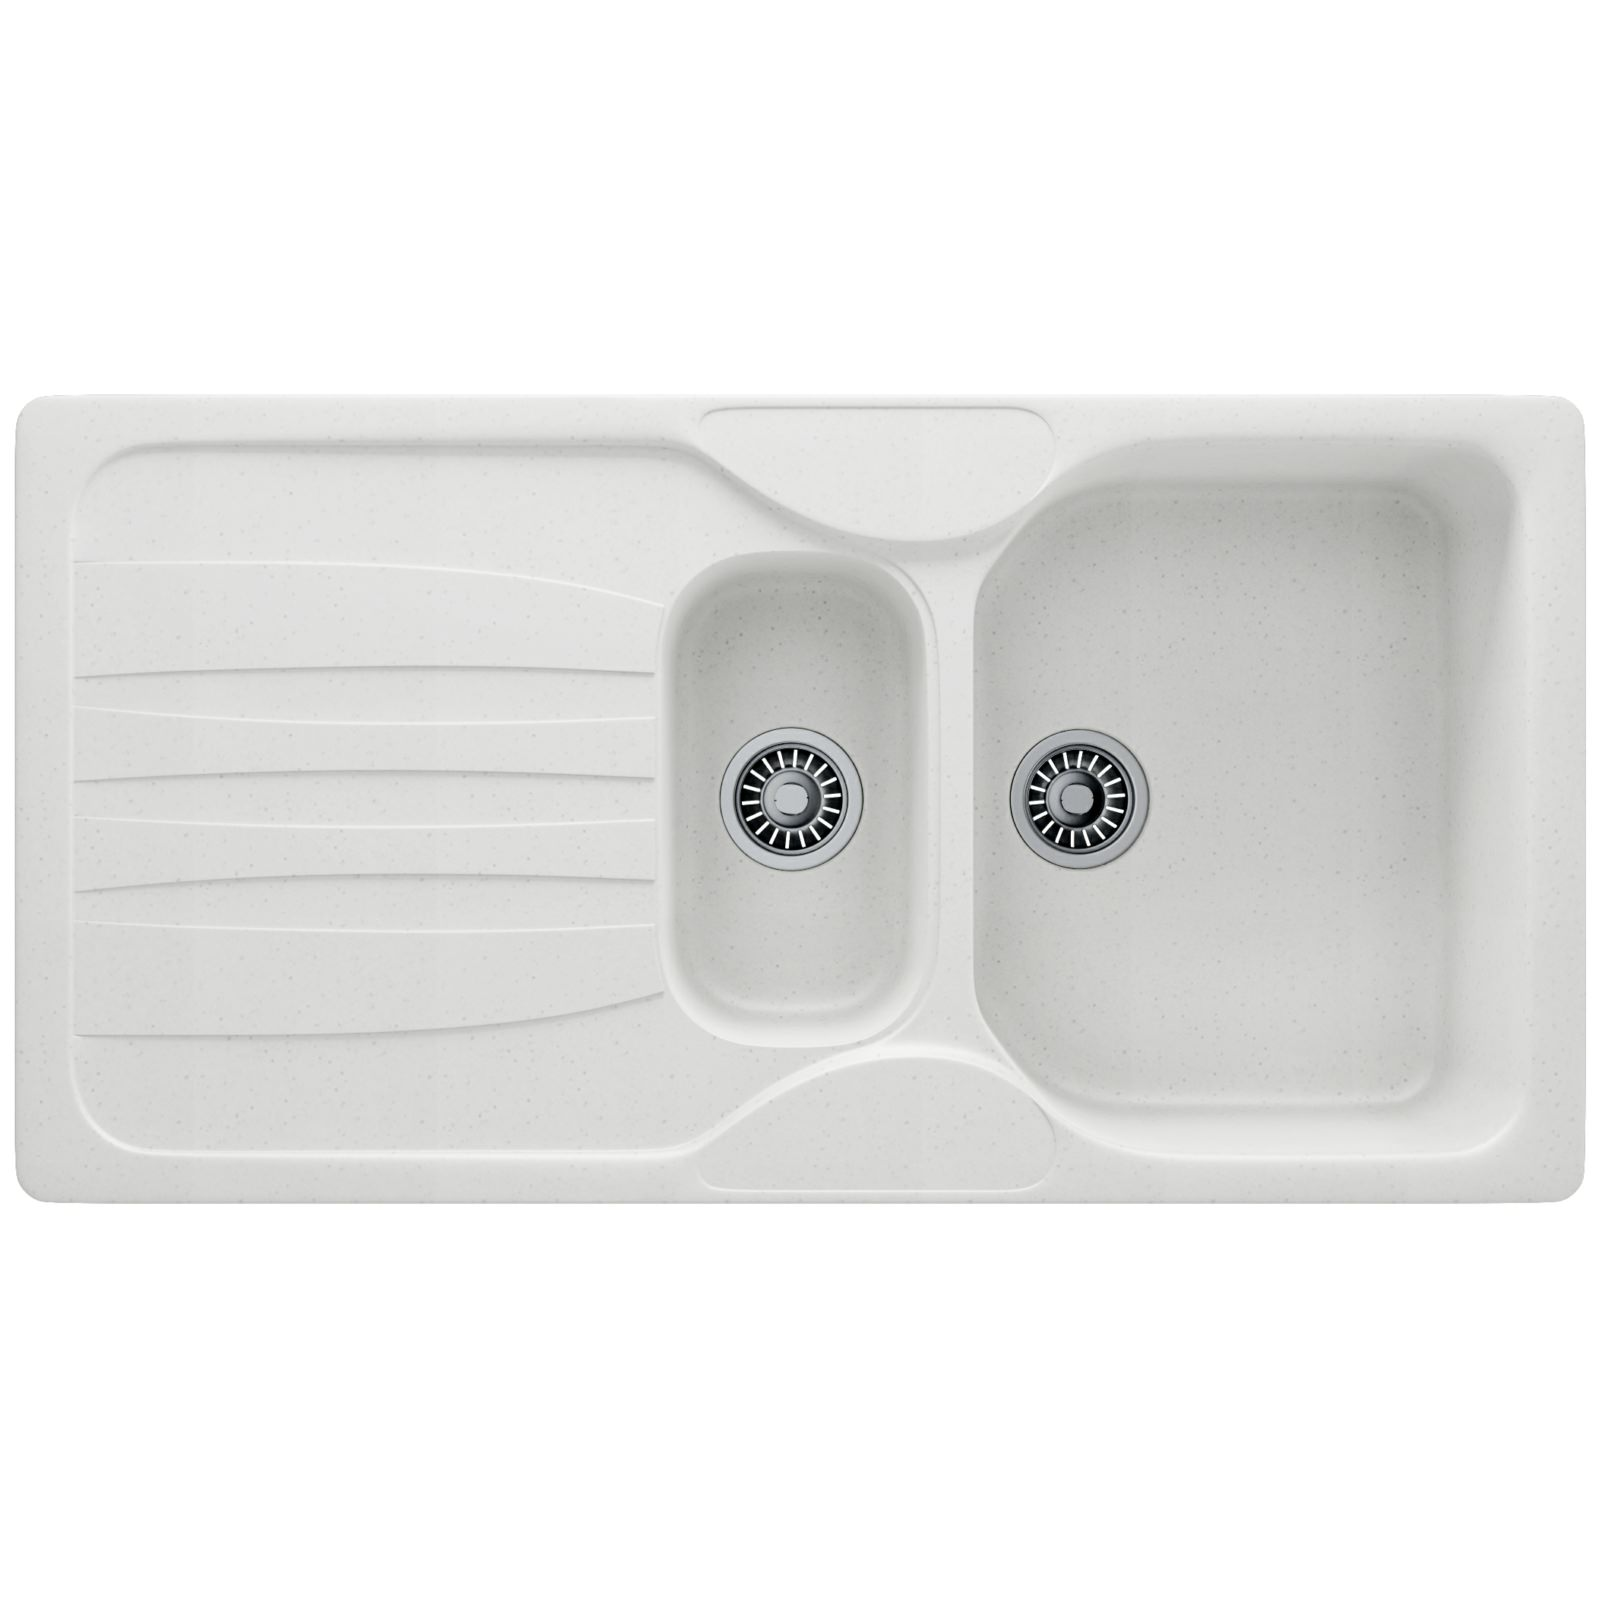 Franke Calypso Sink : Franke Calypso COG 651 Fragranite Polar White 1.5 Bowl Inset Sink ...